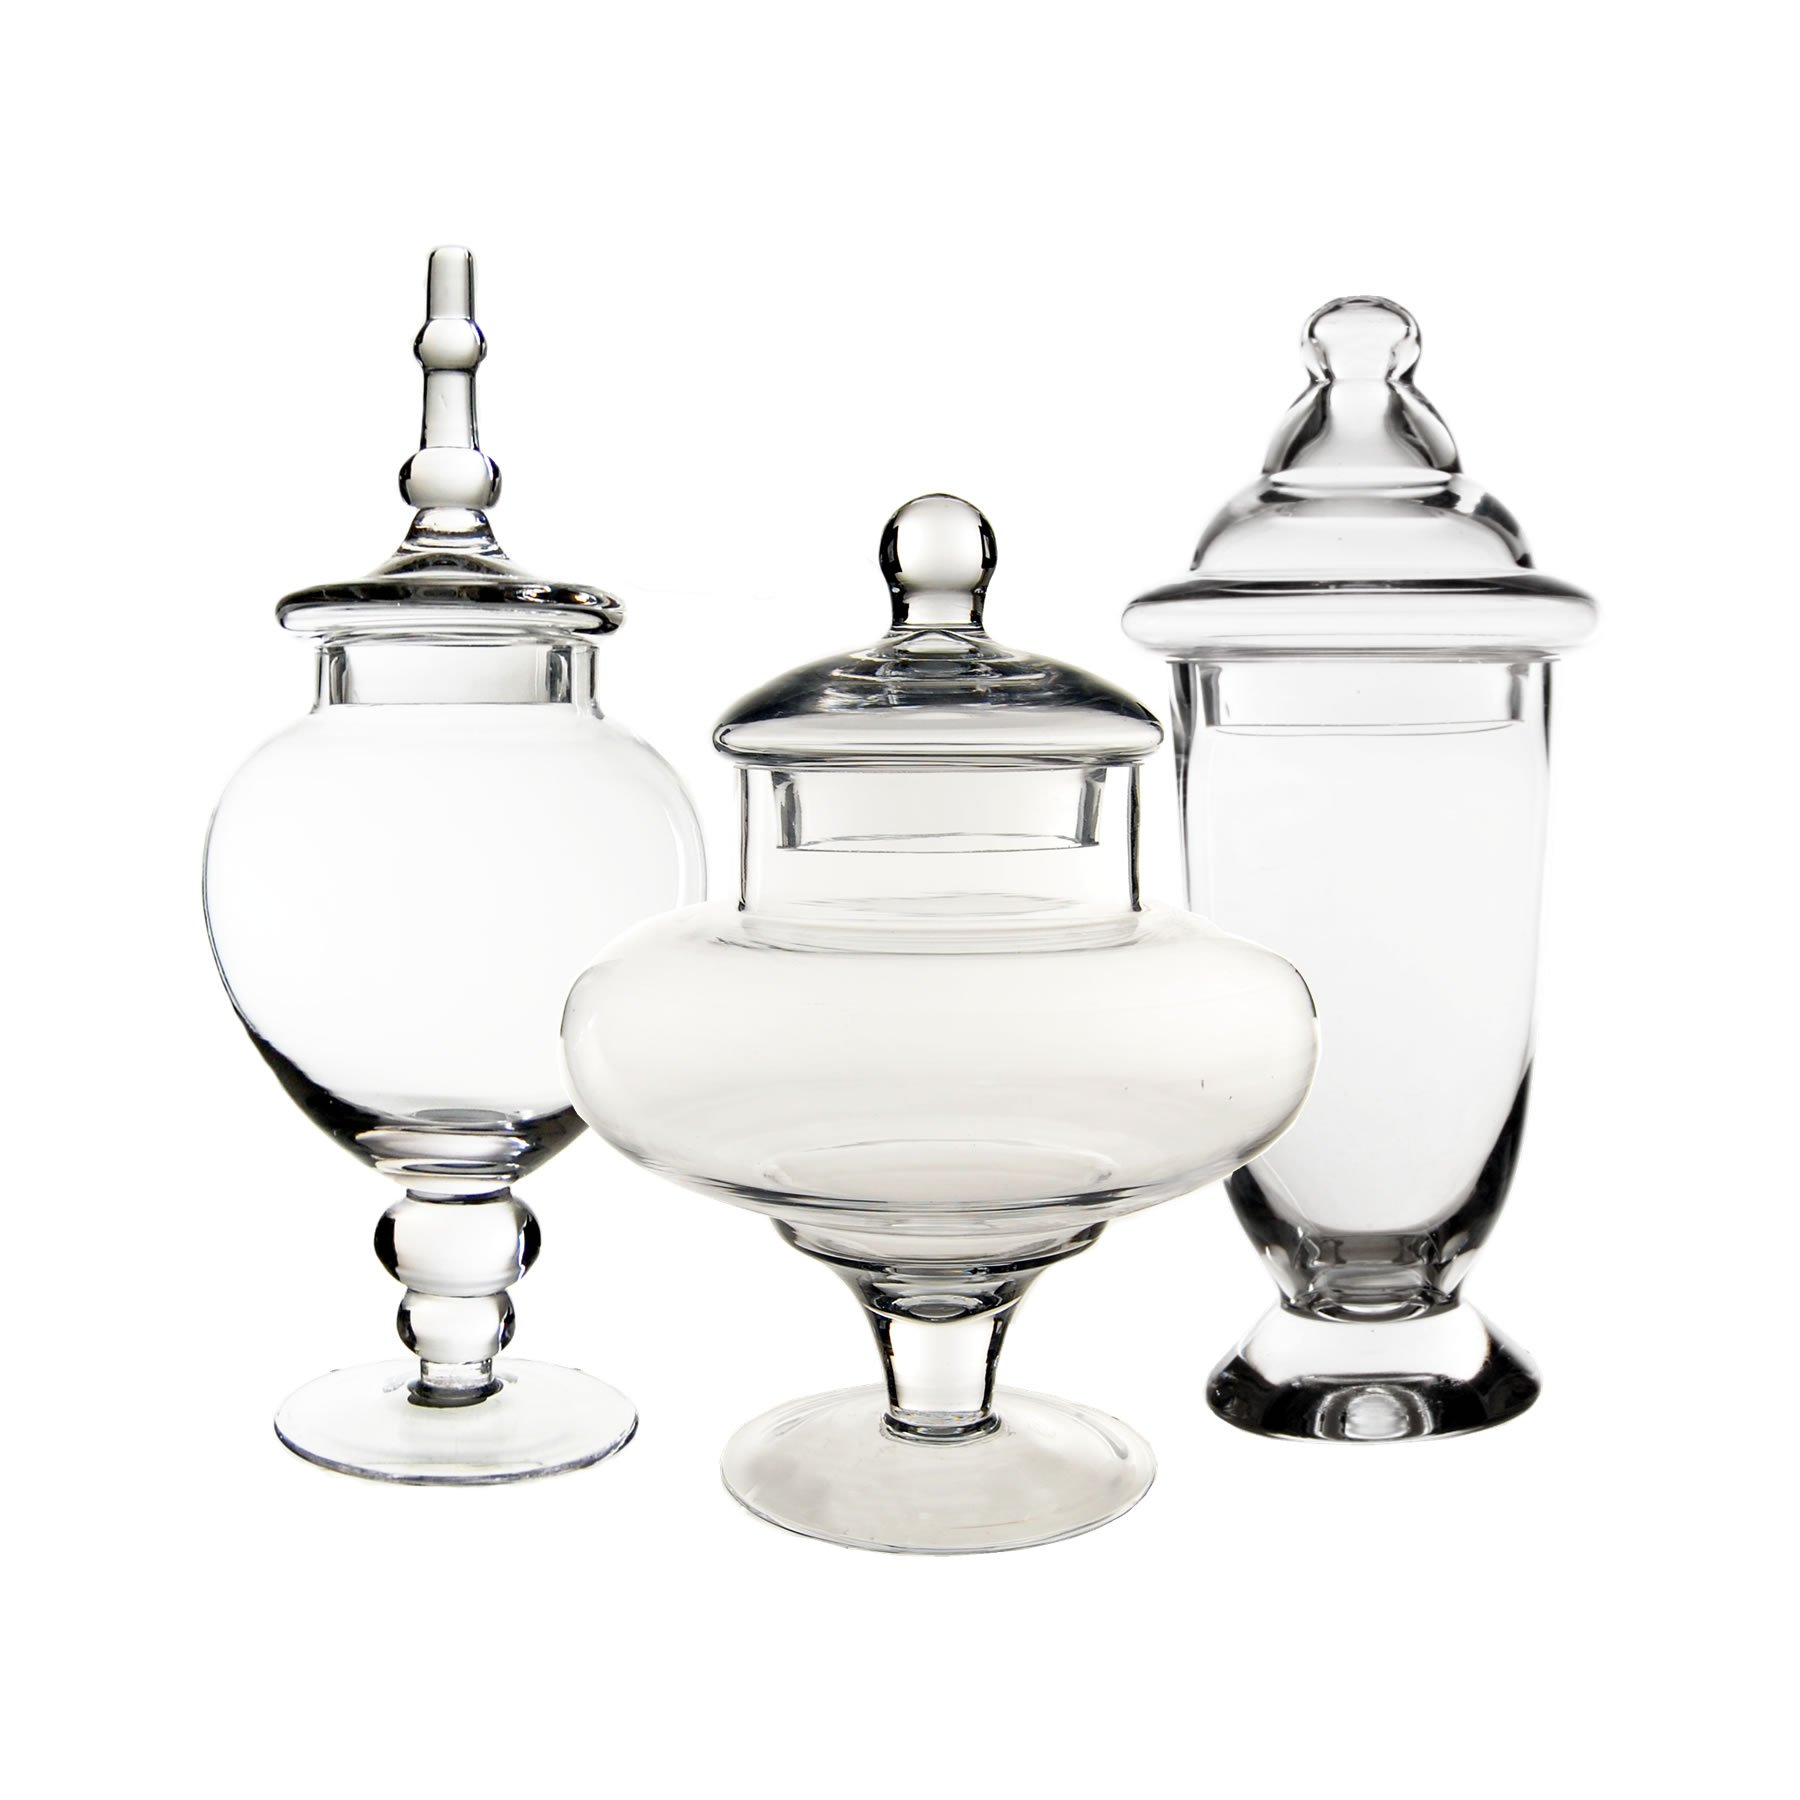 CYS EXCEL Apothecary Jars, Candy Buffet Display, Elegant Storage Jars, 3 Different Styles & Sizes, Pack of 1 Set of 3, Baby Shower Decorations, Height are 10'' 13'' and 14.5'' by CYS EXCEL